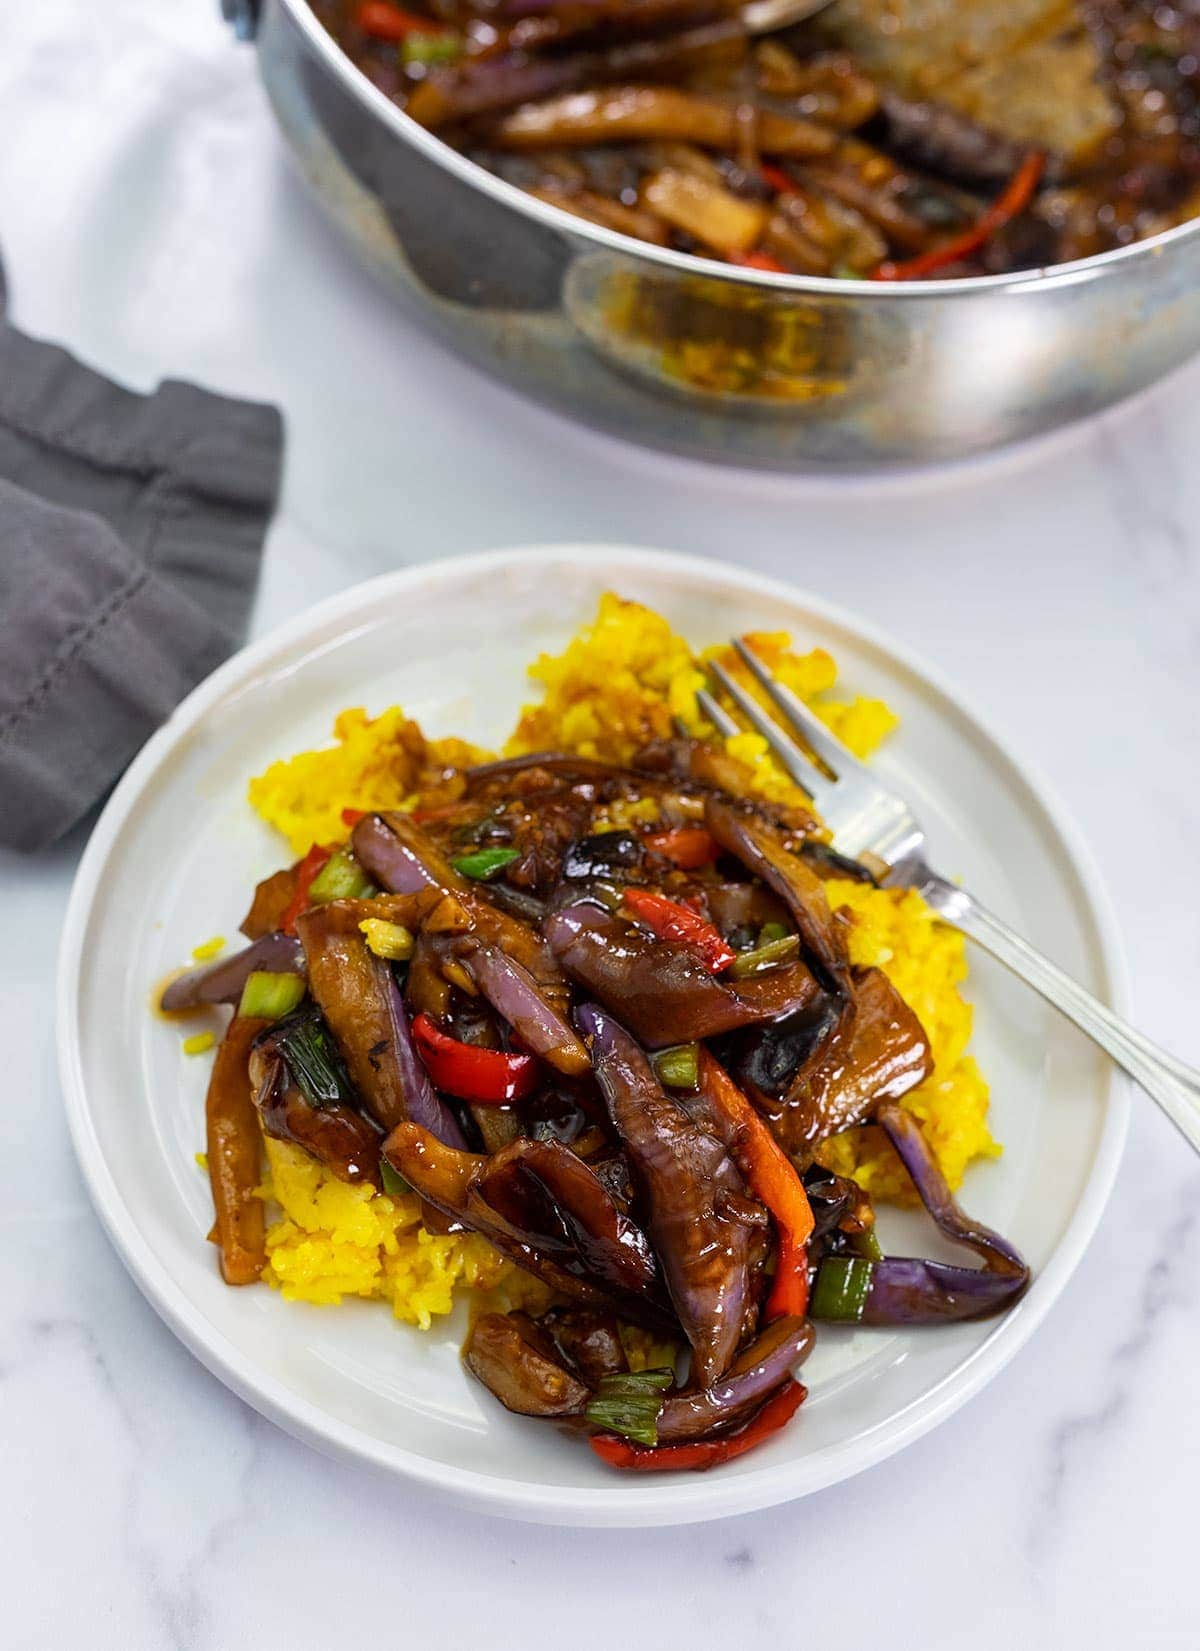 eggplant in garlic sauce over rice on a white plate